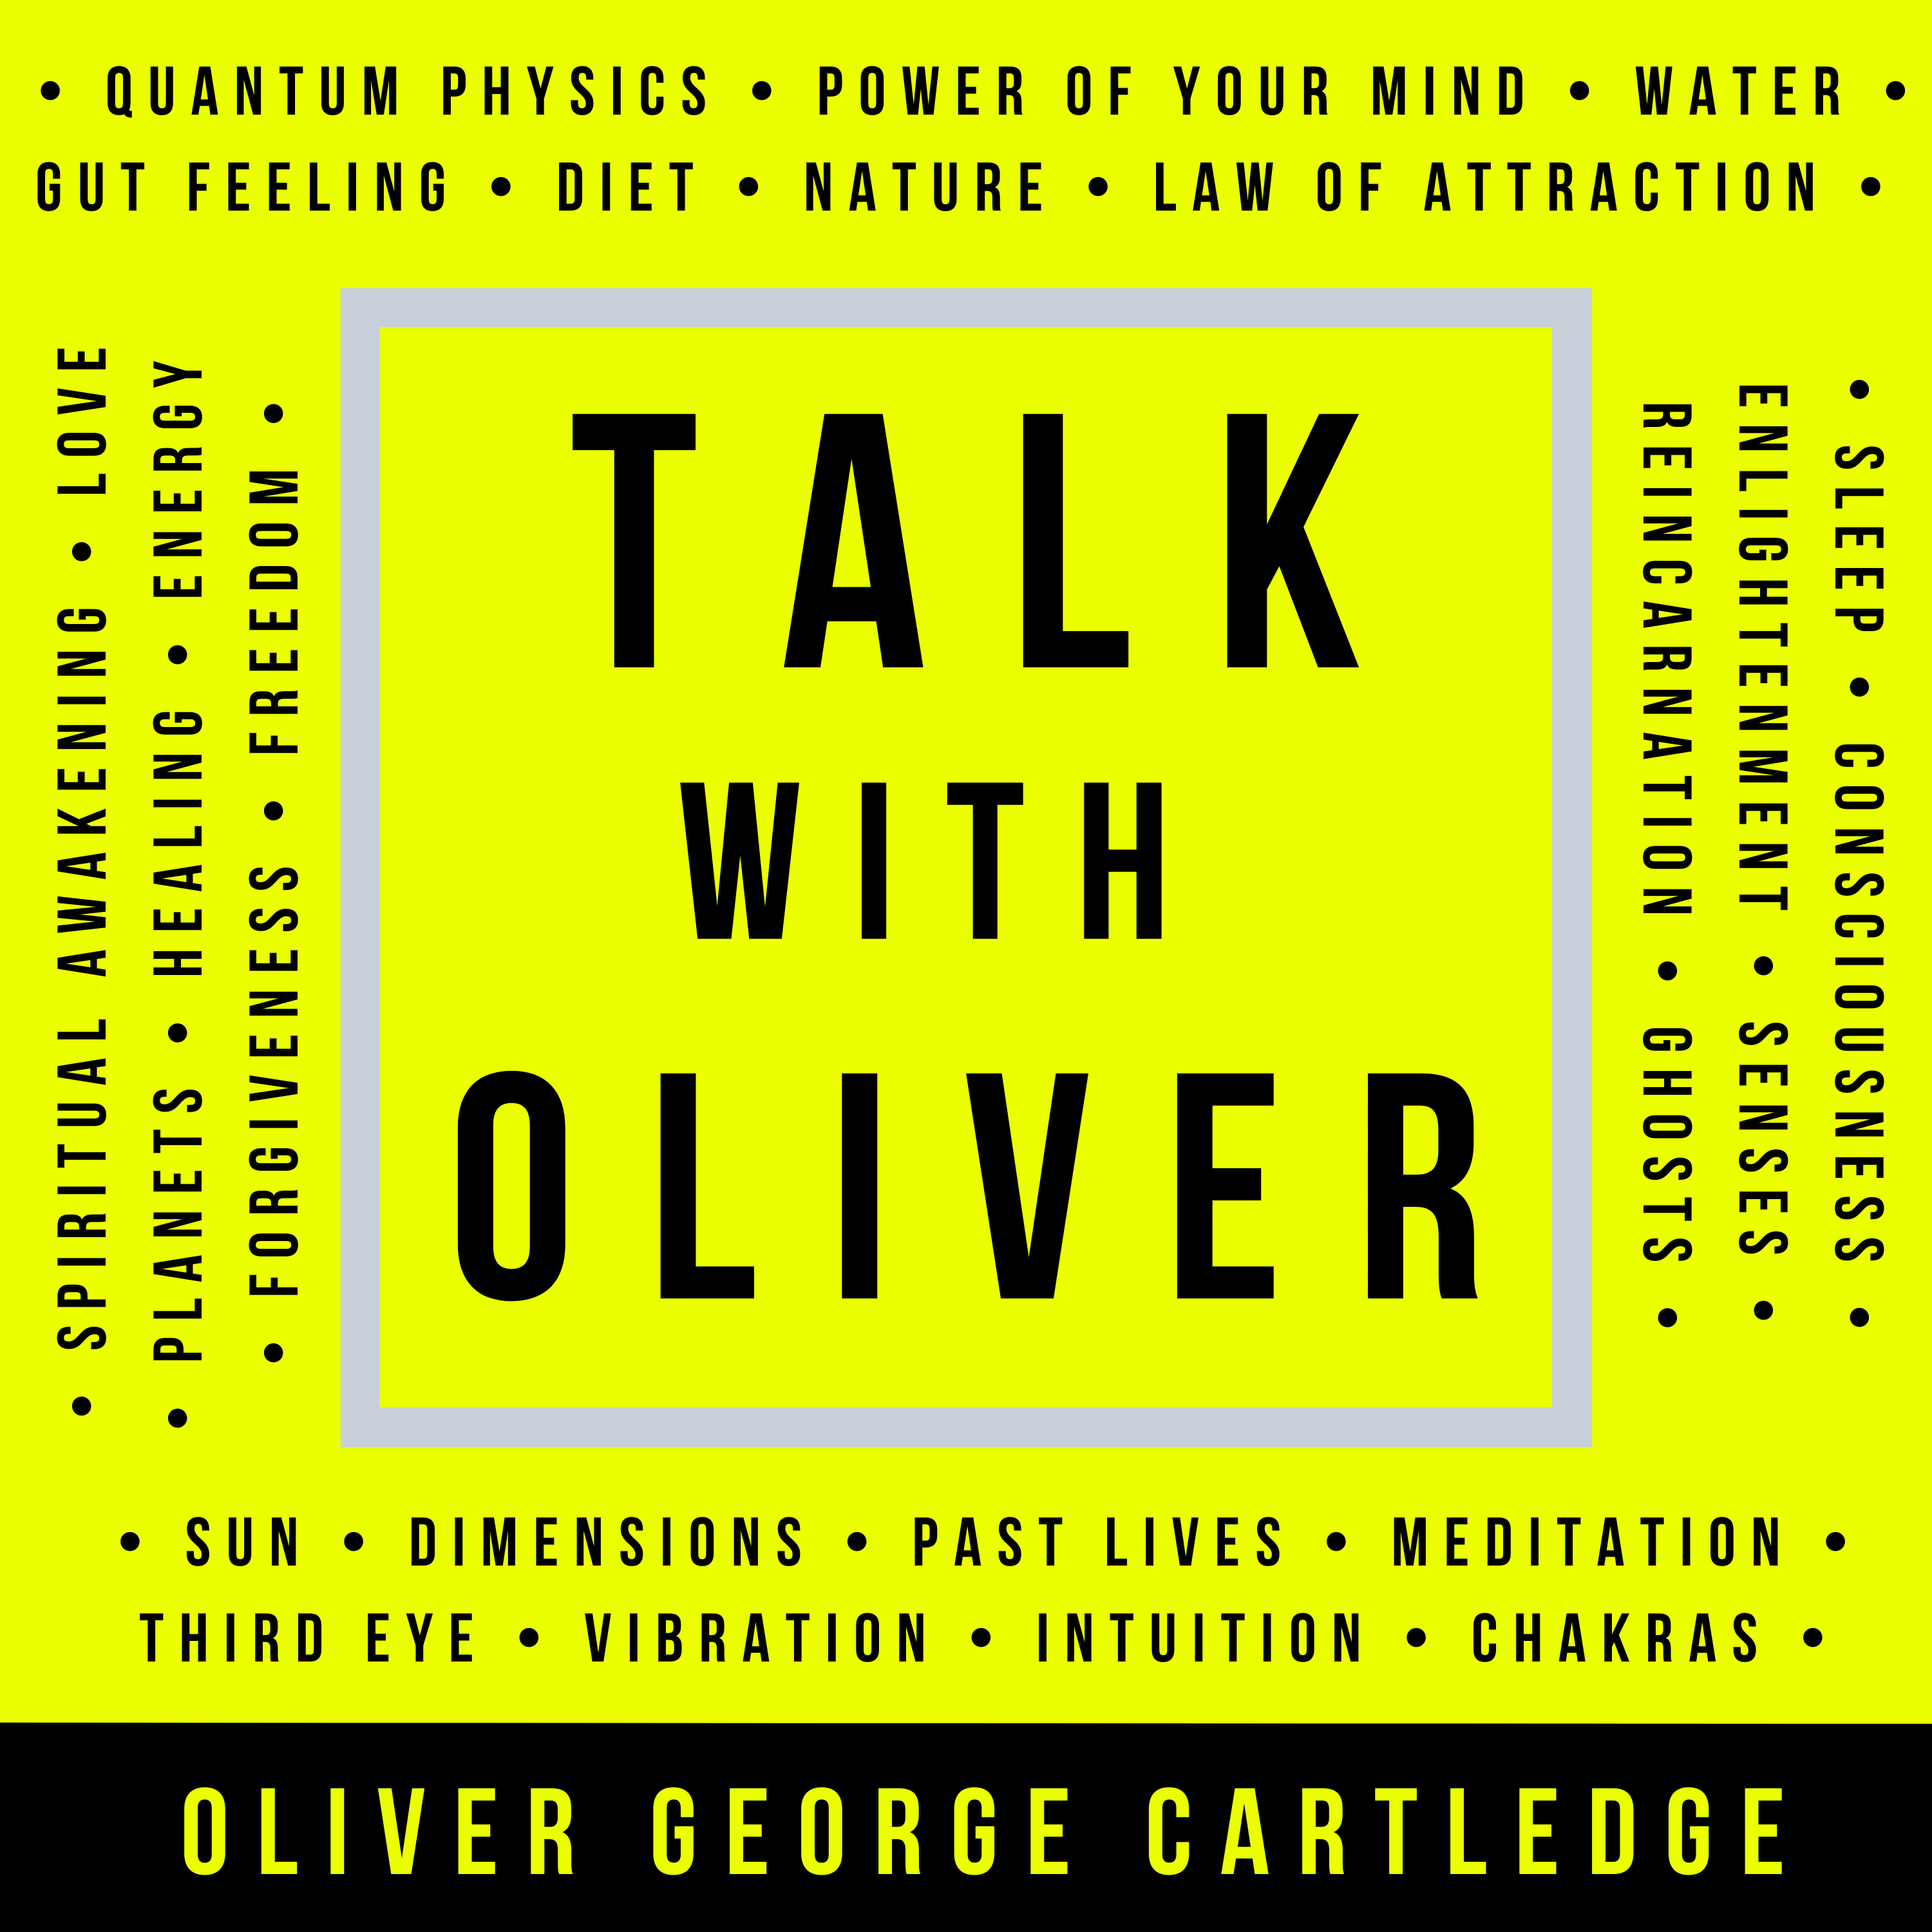 Talk with Oliver